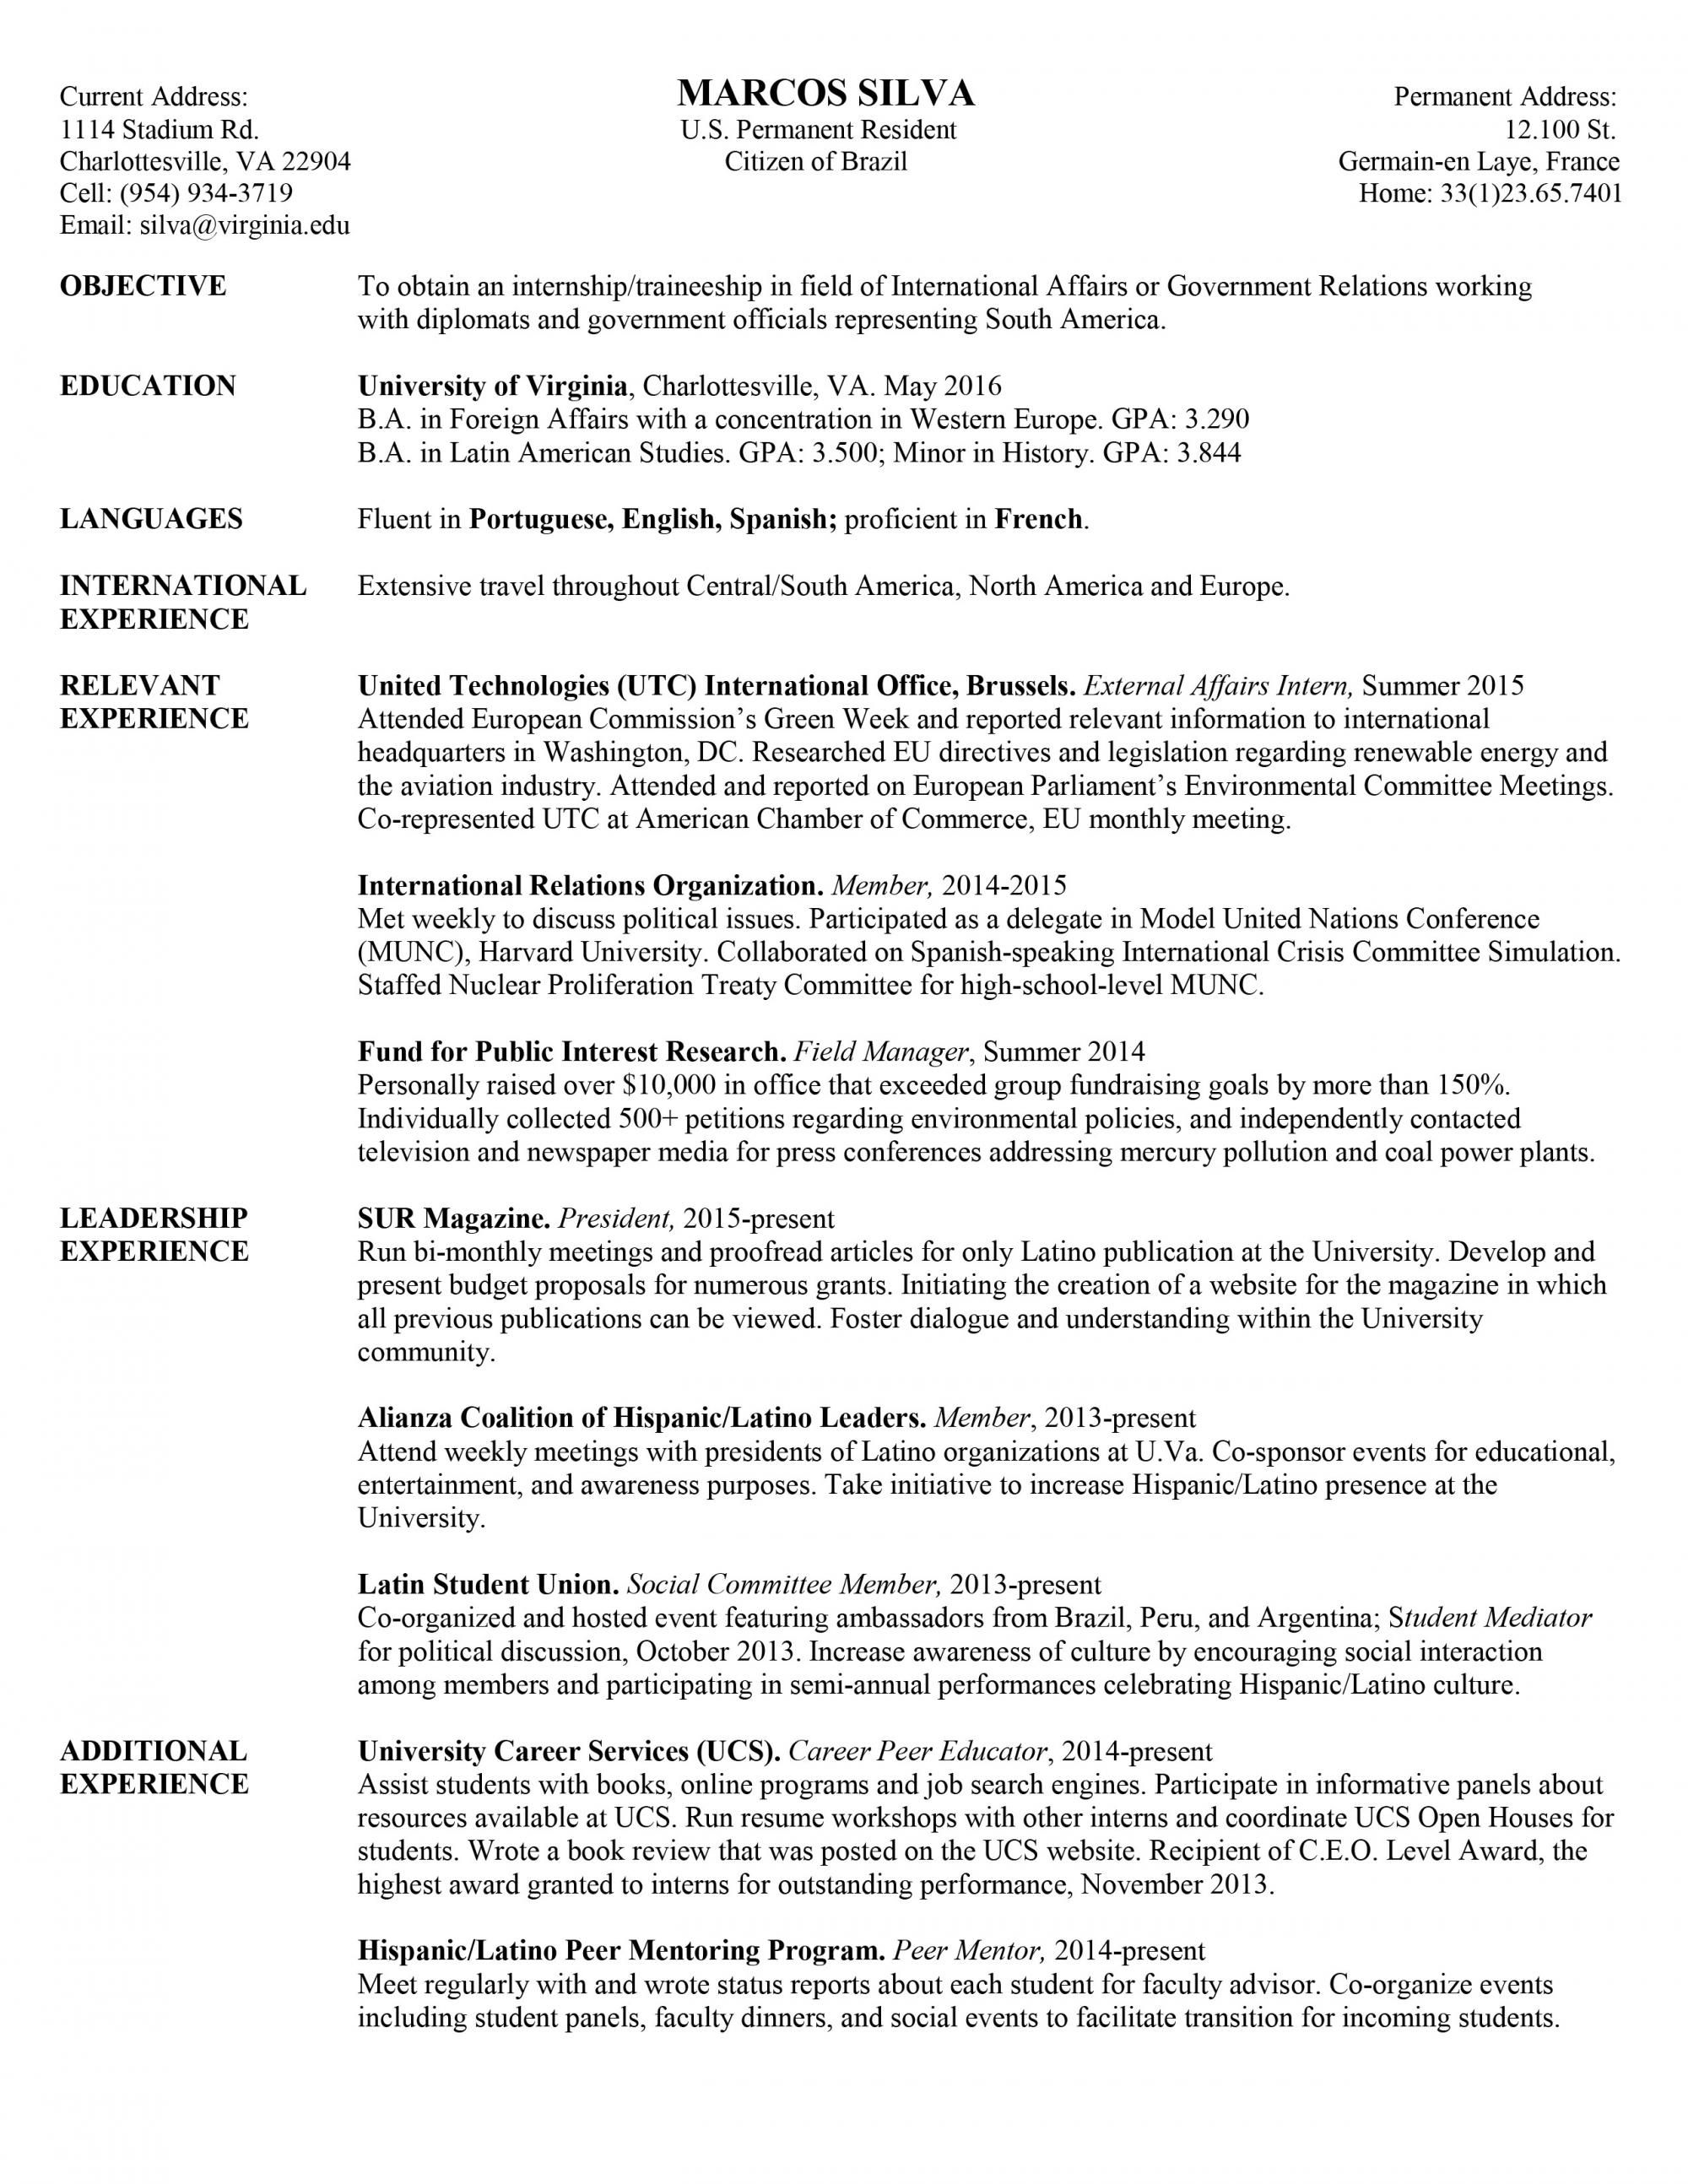 What To Write On Resume If Still In College University Student 4 Resume Examples Sample Resume